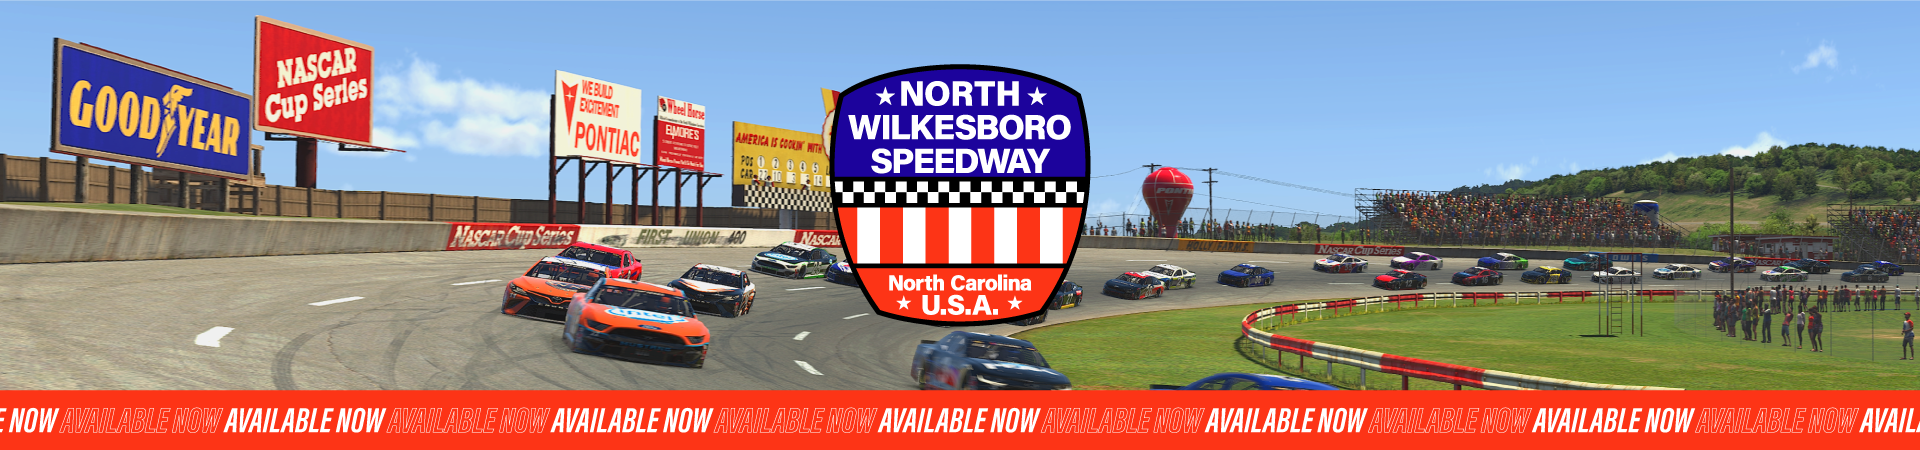 North Wilkesboro Speedway Is Now Available